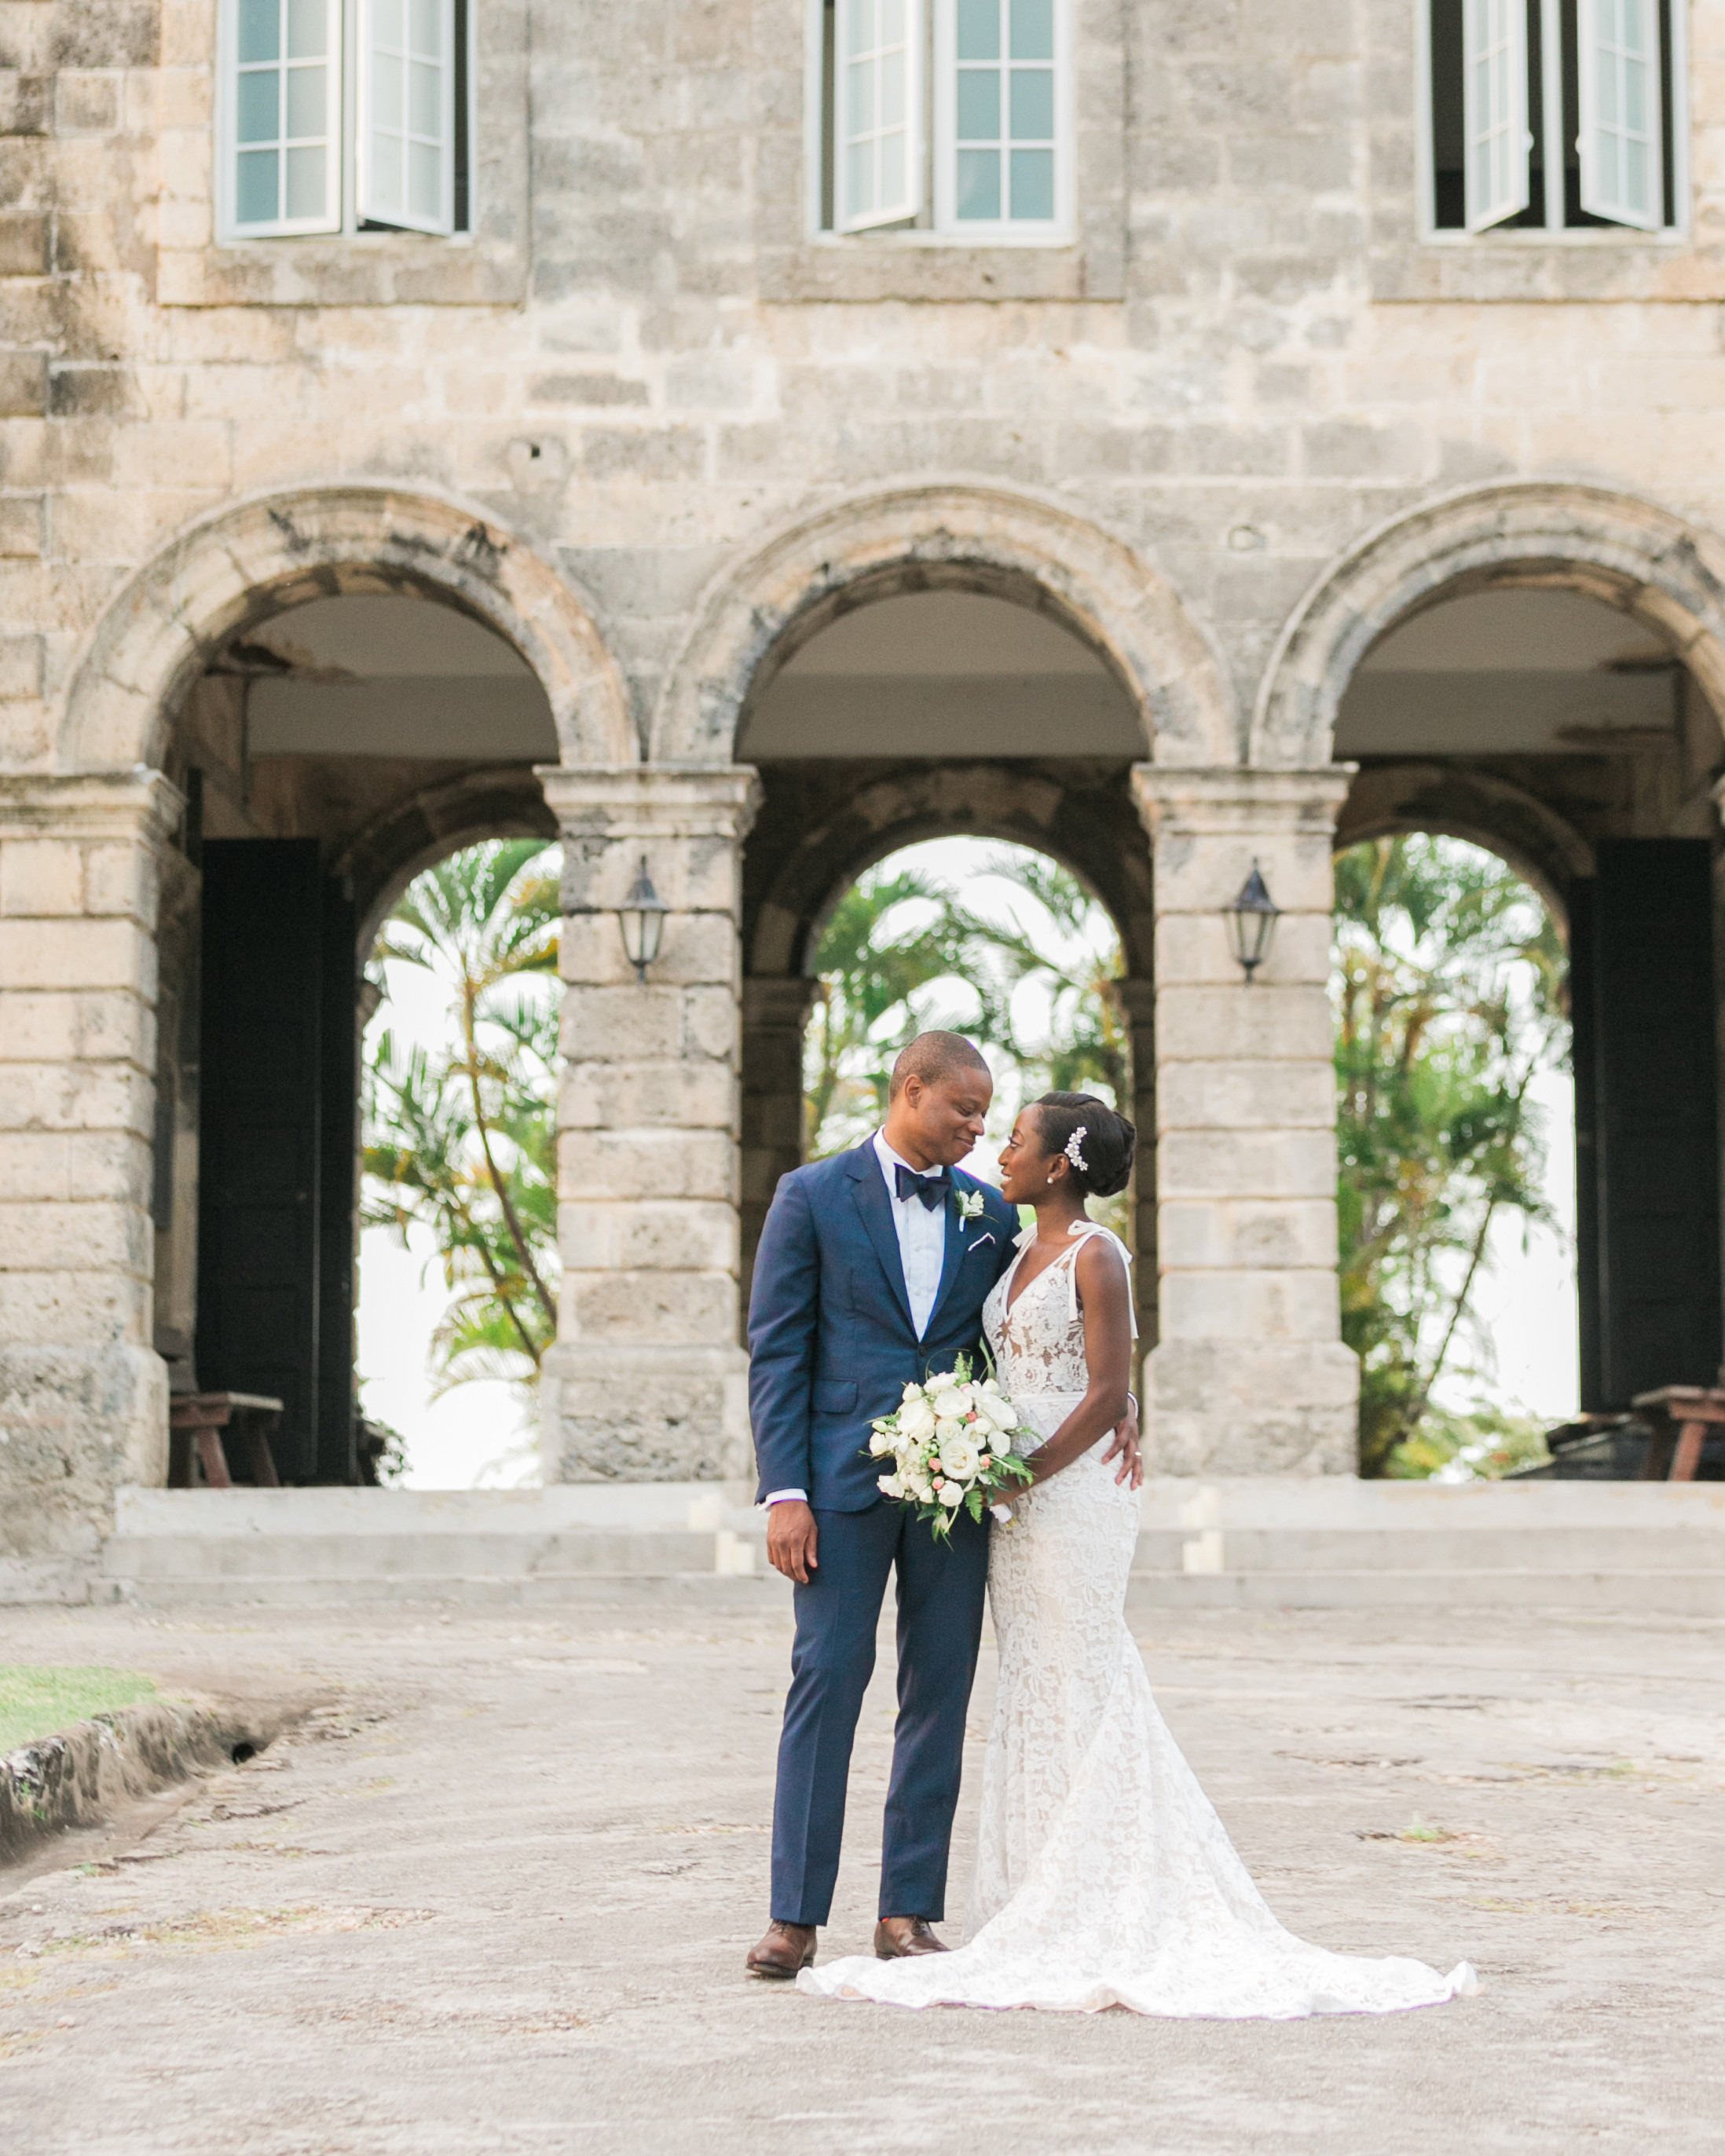 Wedding Ceremony Sites: Your Wedding Ceremony Etiquette Questions Answered